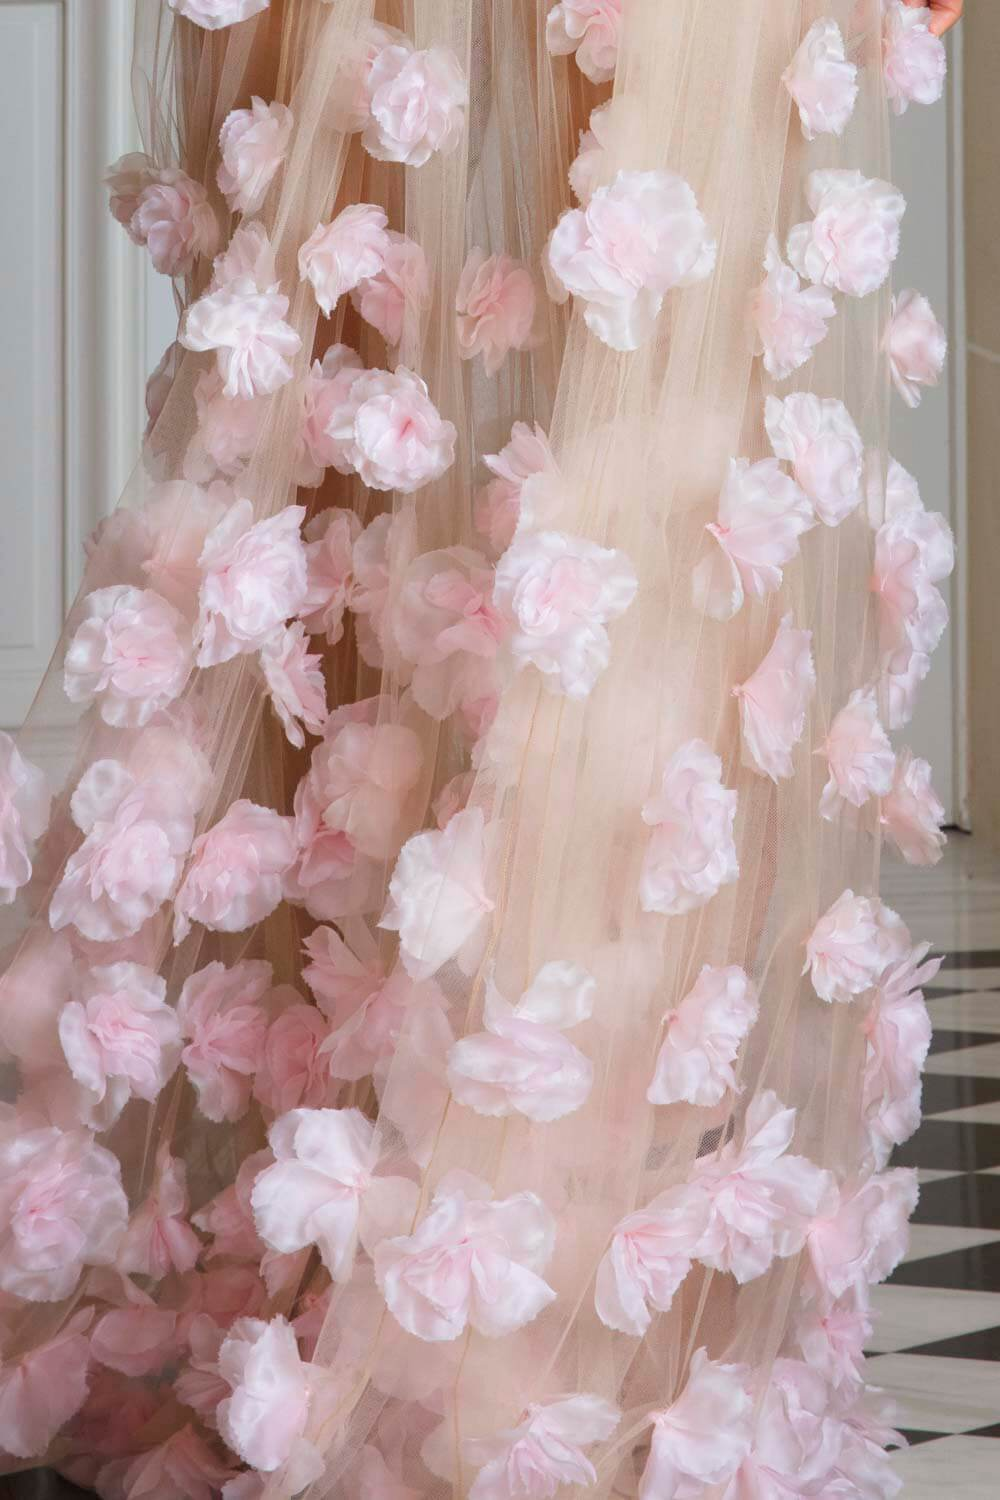 Barely-there nude floor-length gown with pink appliqué petals, worn over a fitted nude body